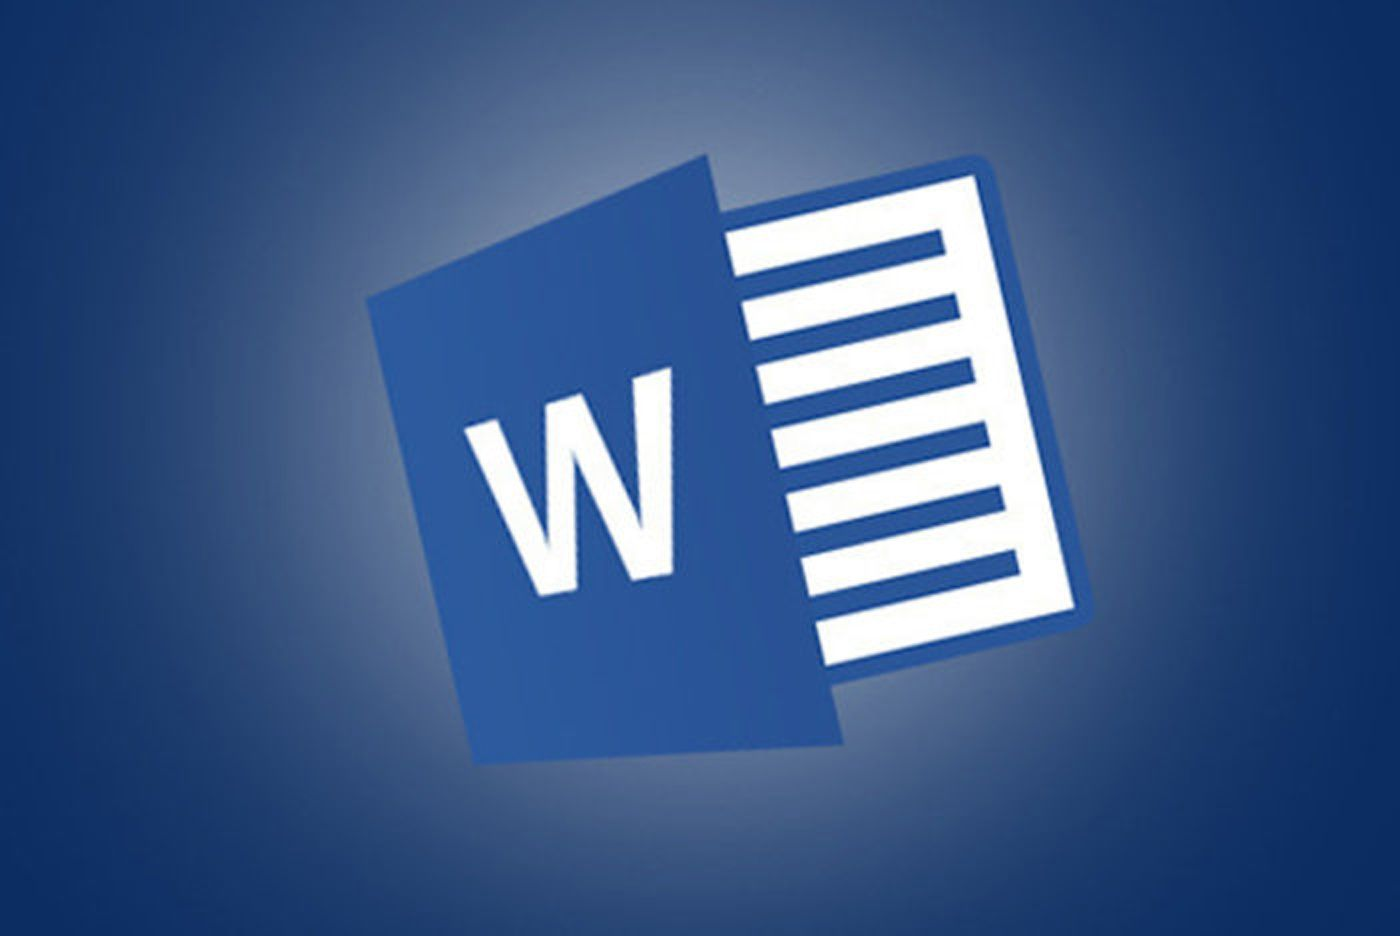 Microsoft Word Logo - How to use, modify, and create templates in Word | PCWorld